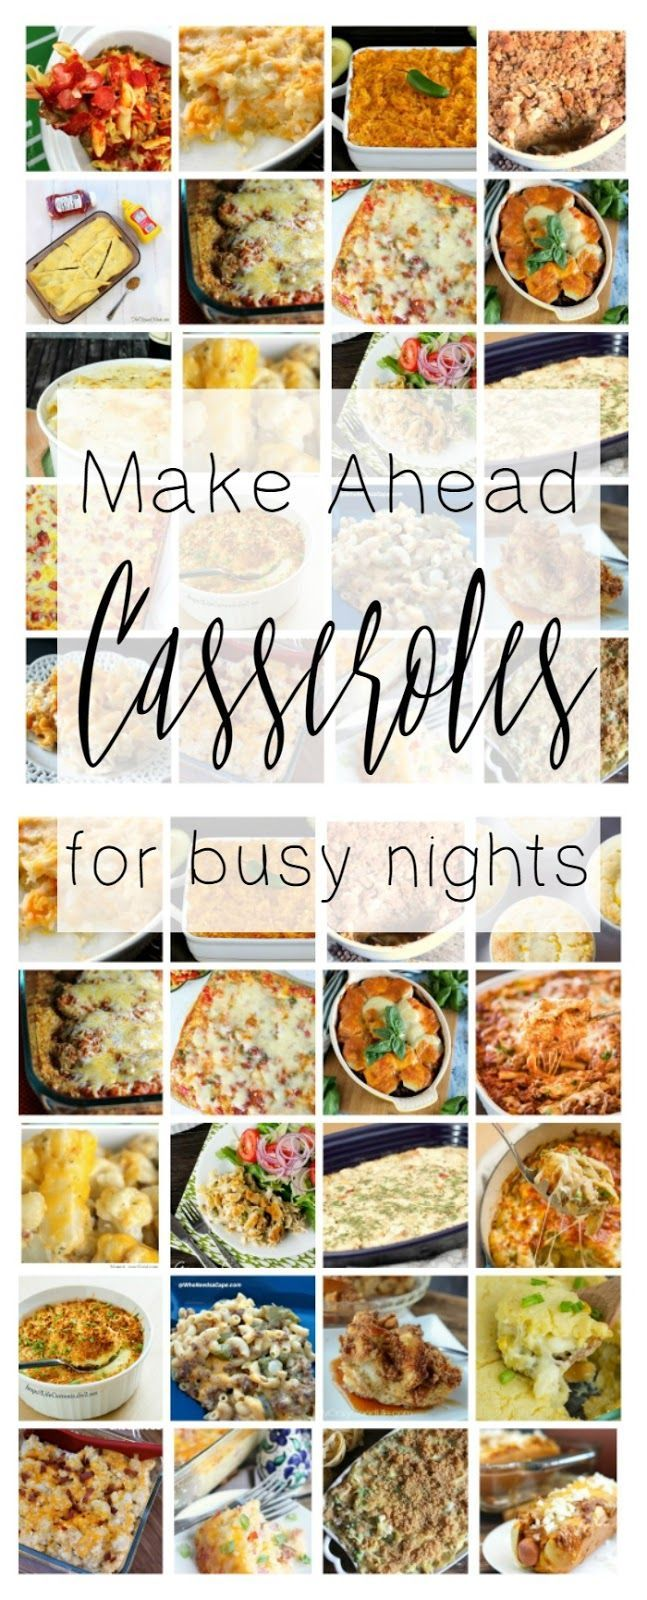 This Collection Of Make Ahead Casserole Dinner Recipes Is Perfect For Meal Planning Baby Prep And Any Time You Want To Have A Simple Homemade